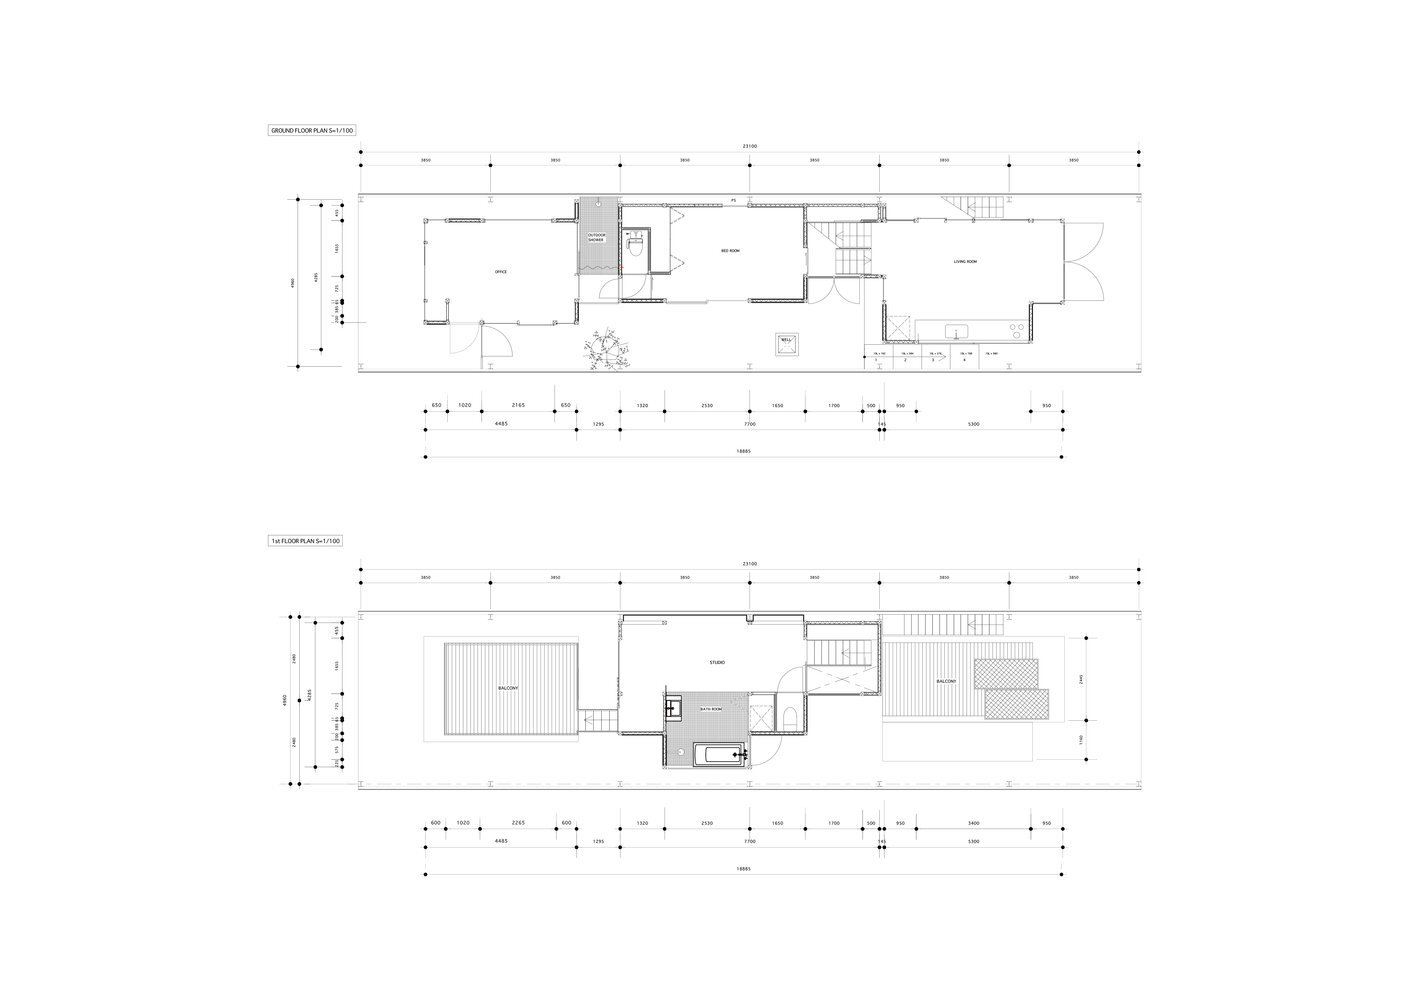 House-of-33-Years-ASSISTANT-Japan-Floor-Plan-Humble-Homes